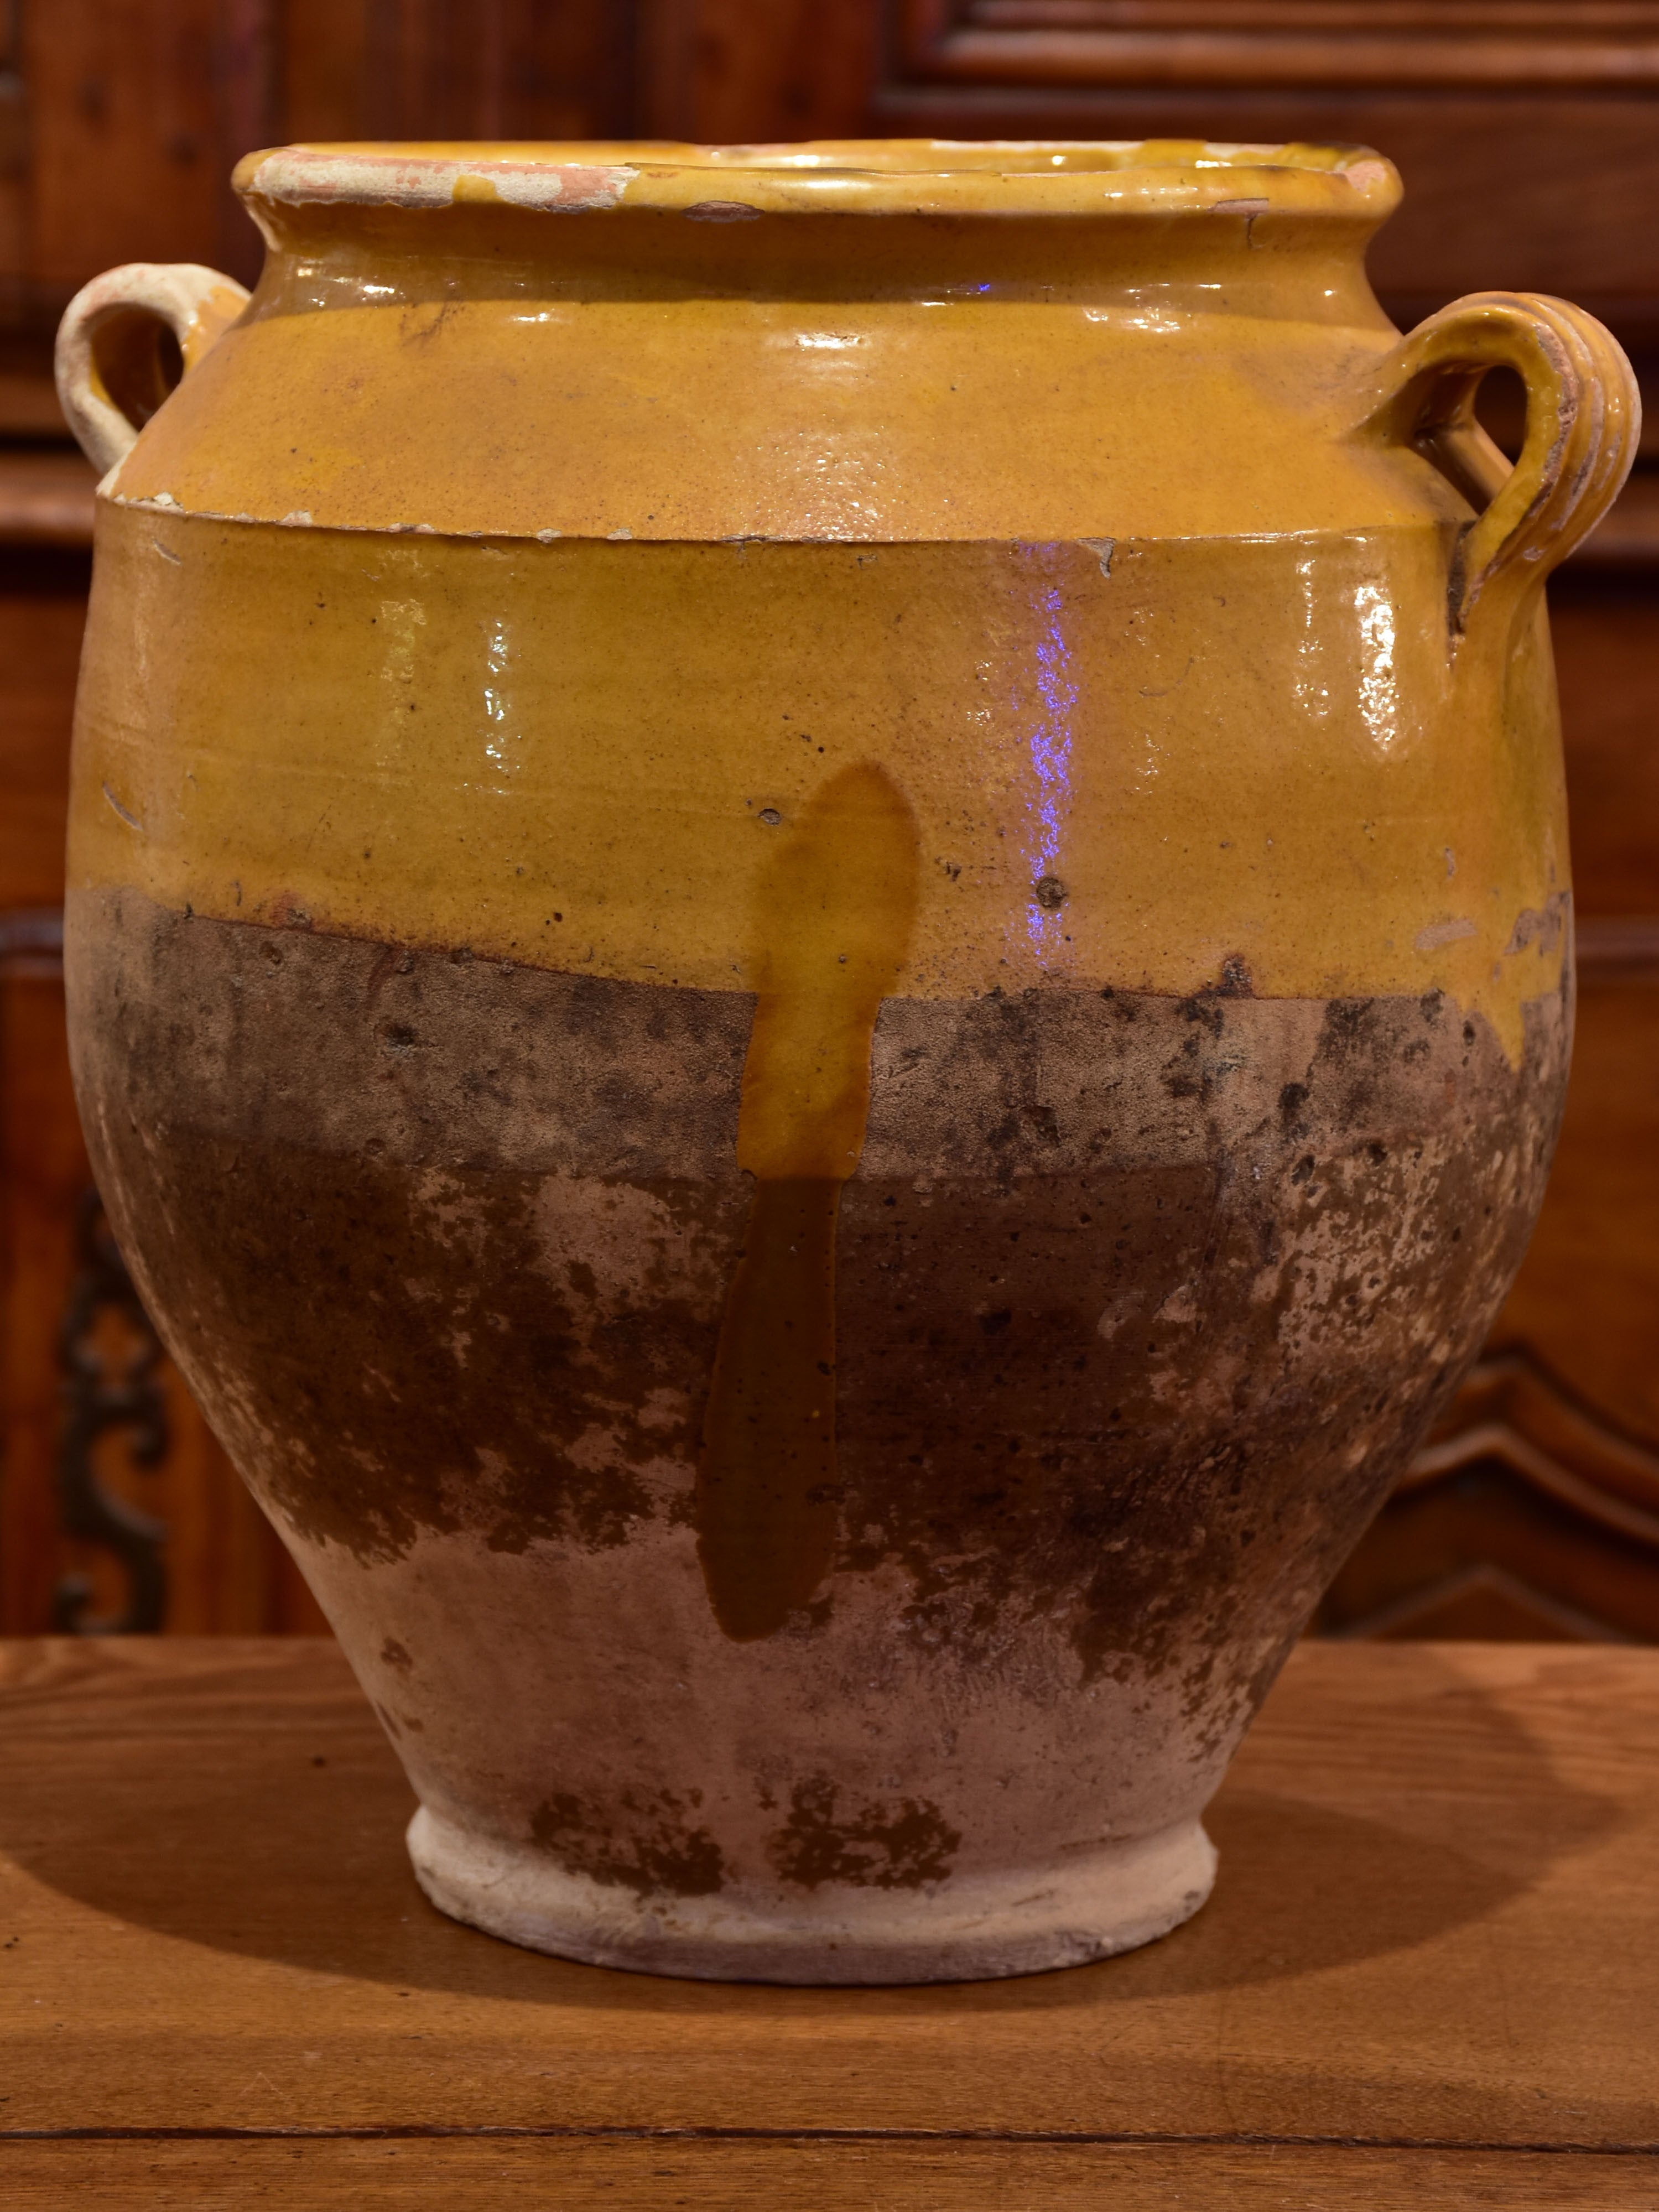 19th century French confit pot with ochre glaze